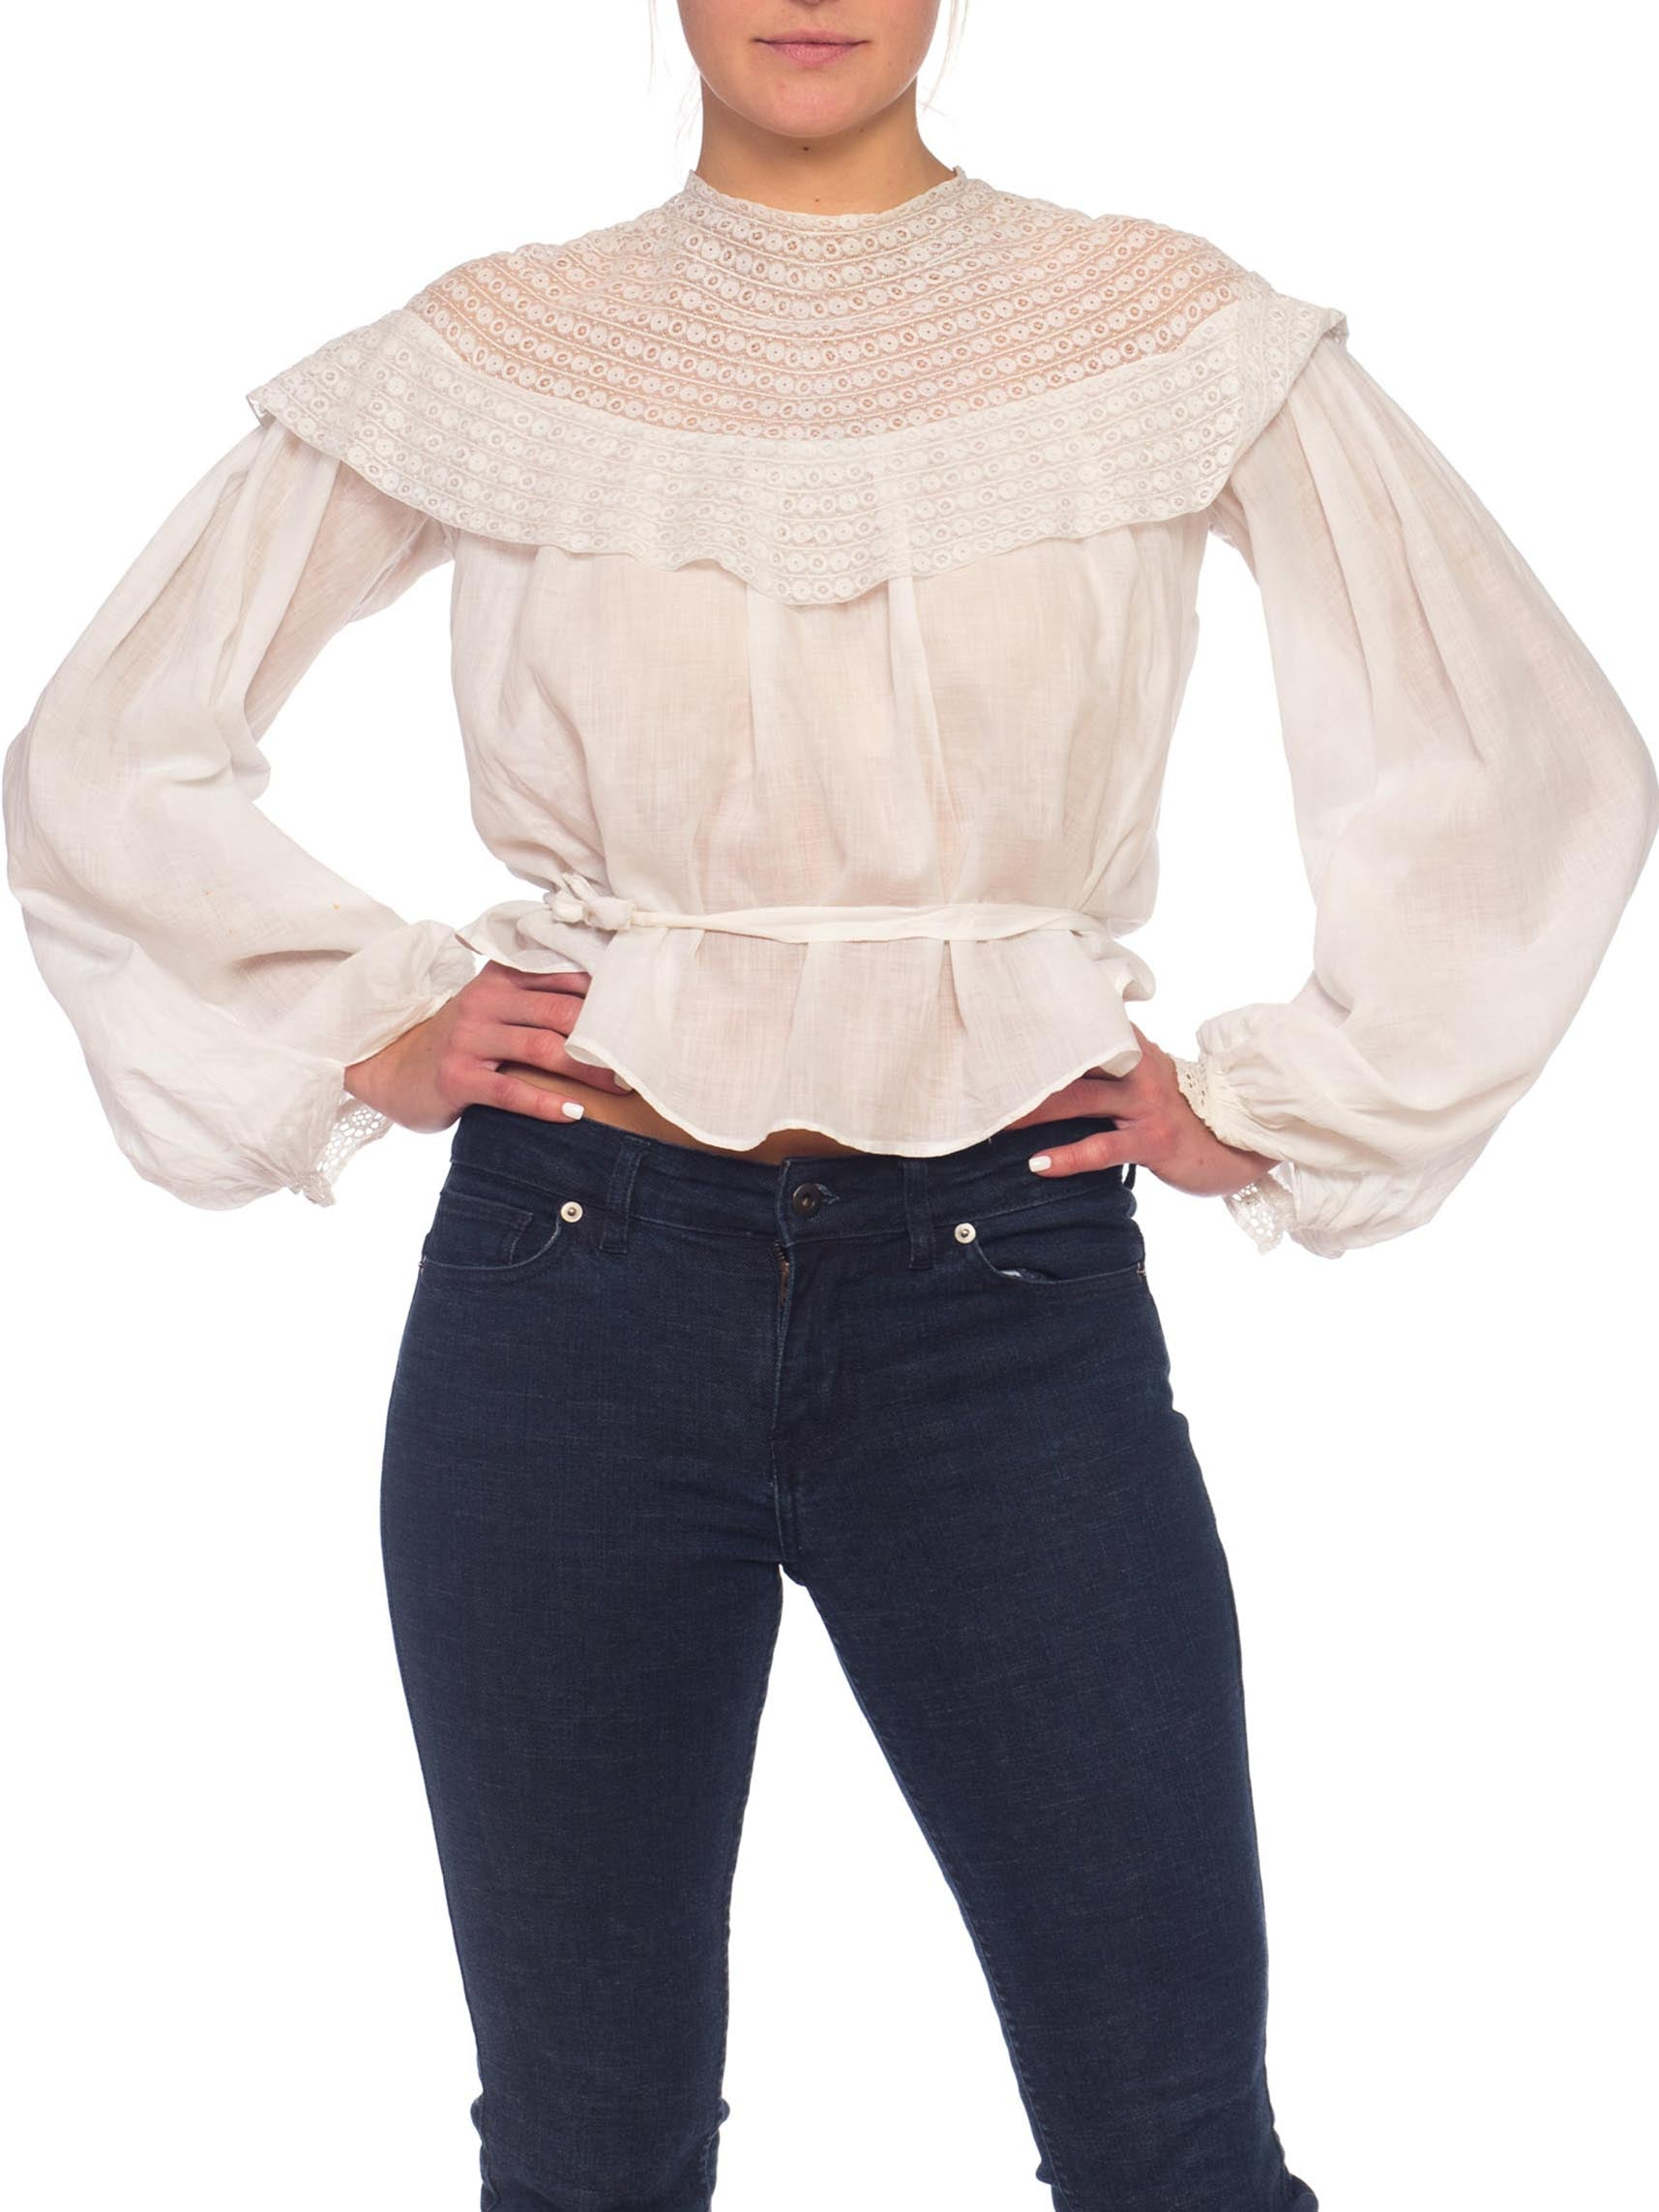 White Cotton Voile & Tape Lace Swan Neck Blouse With Bishop Sleeves